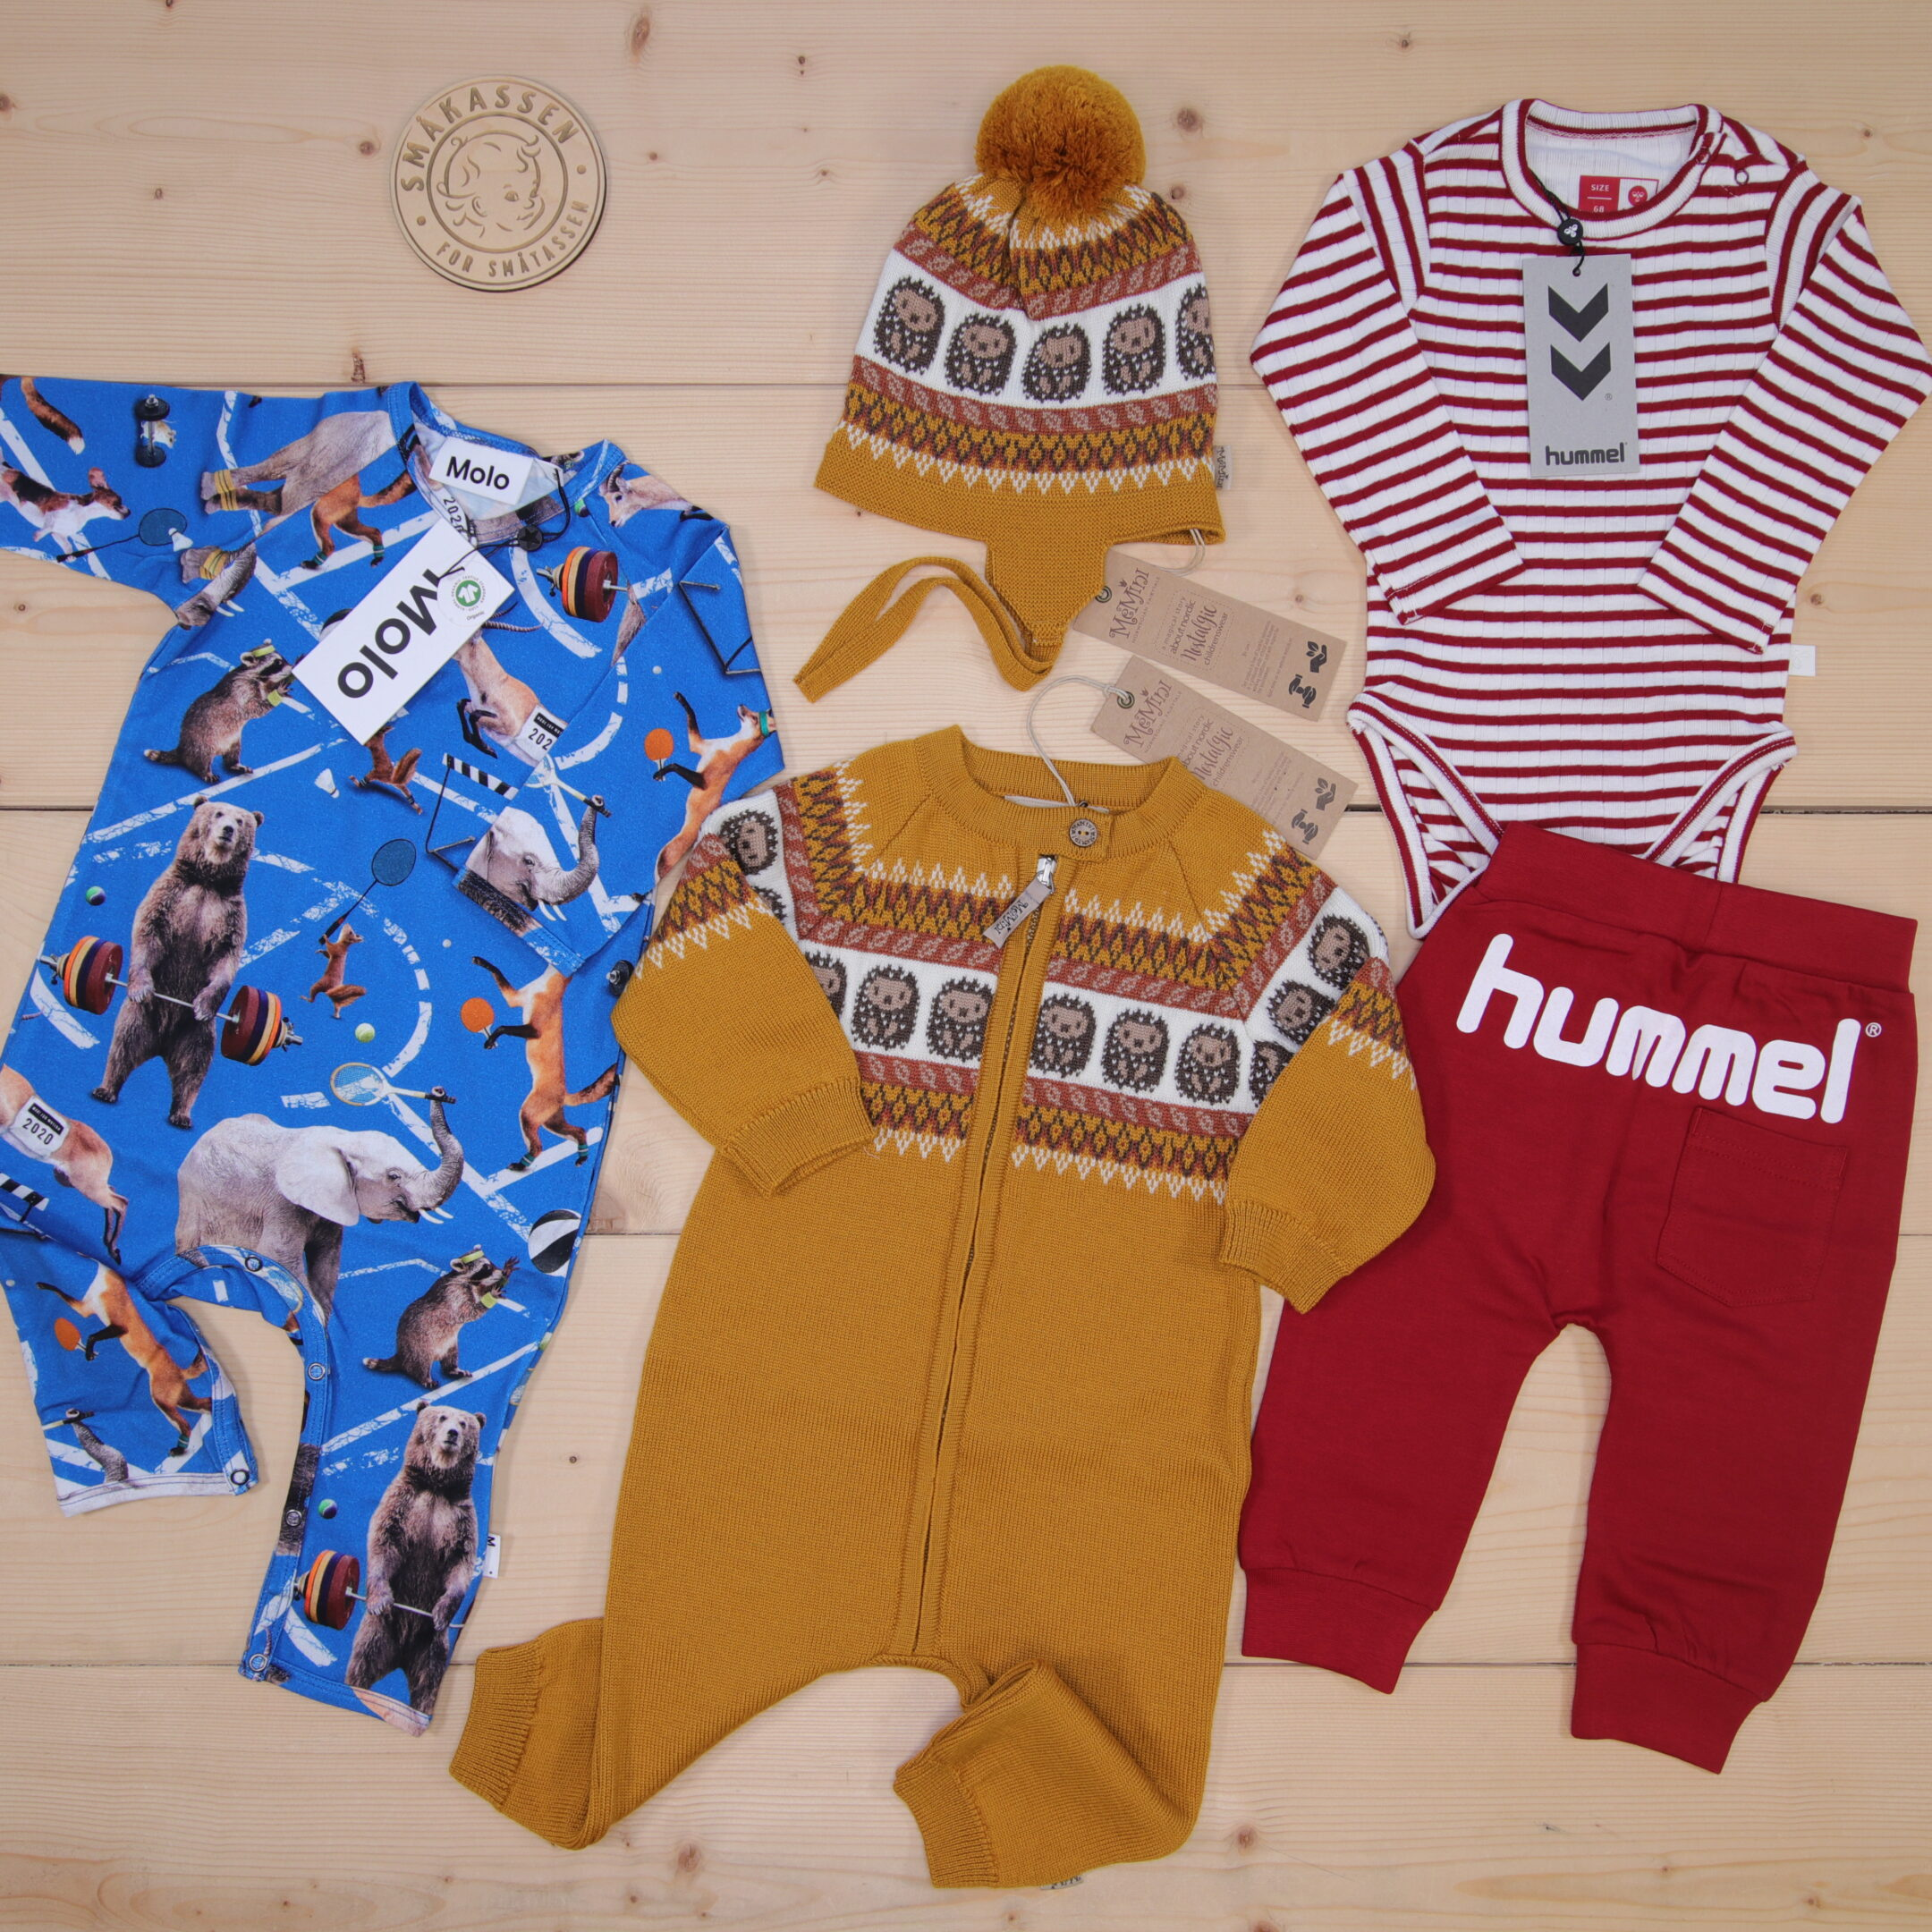 This is a 2000 NOK* Småkassen that we prepared for a boy  in the styles cool, cute, and colorful in size 68